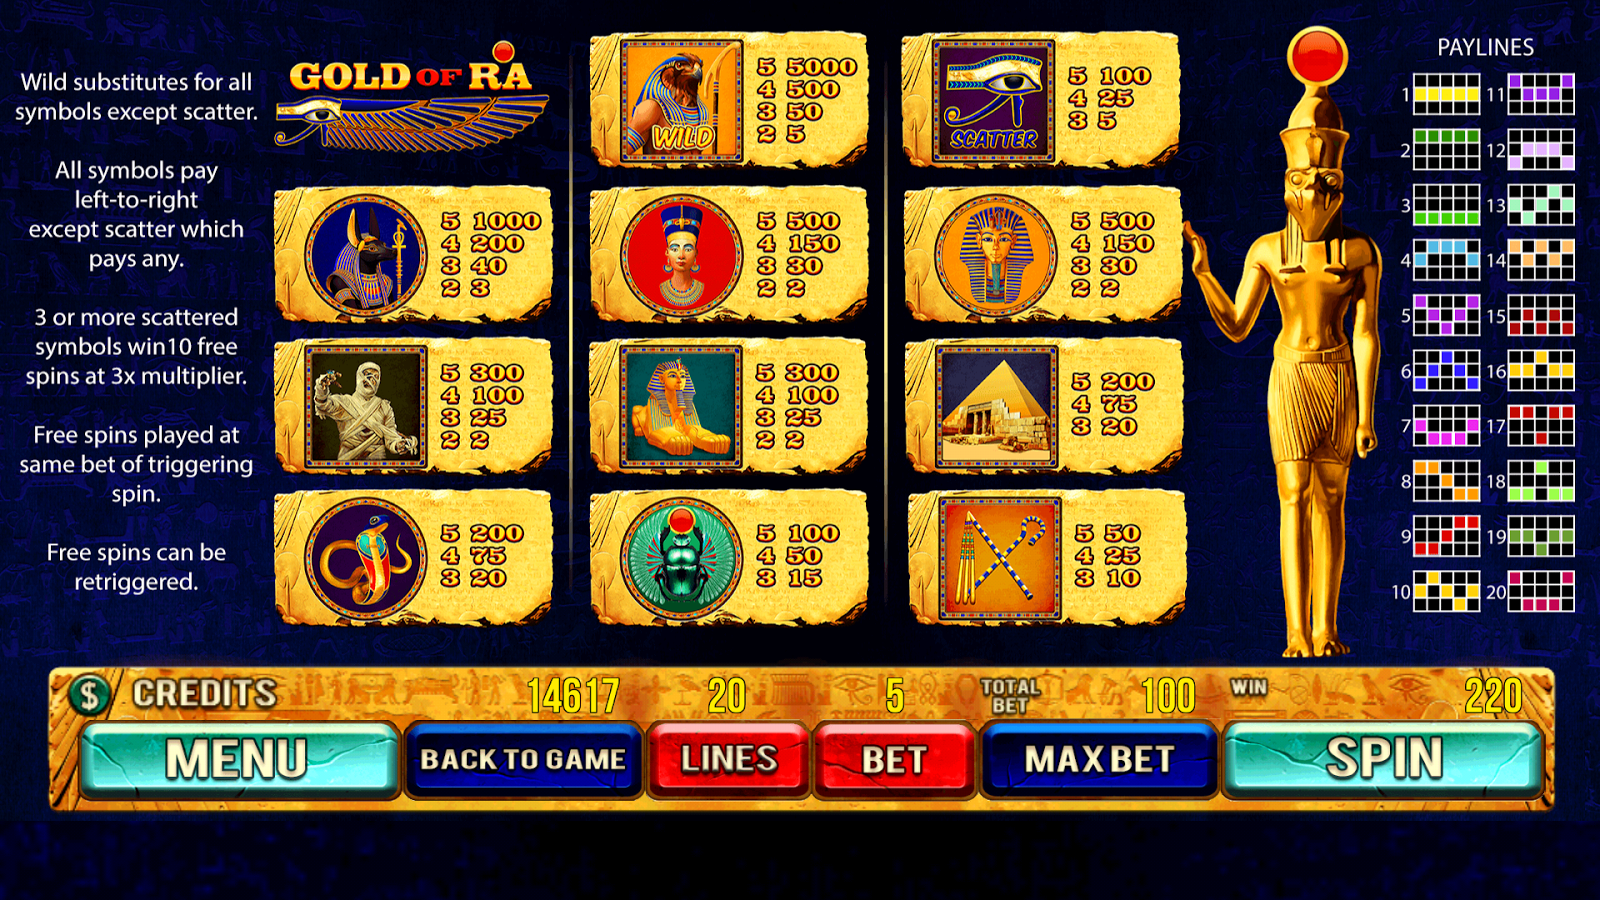 Pyramid of Gold Slot Machine - Play for Free & Win for Real